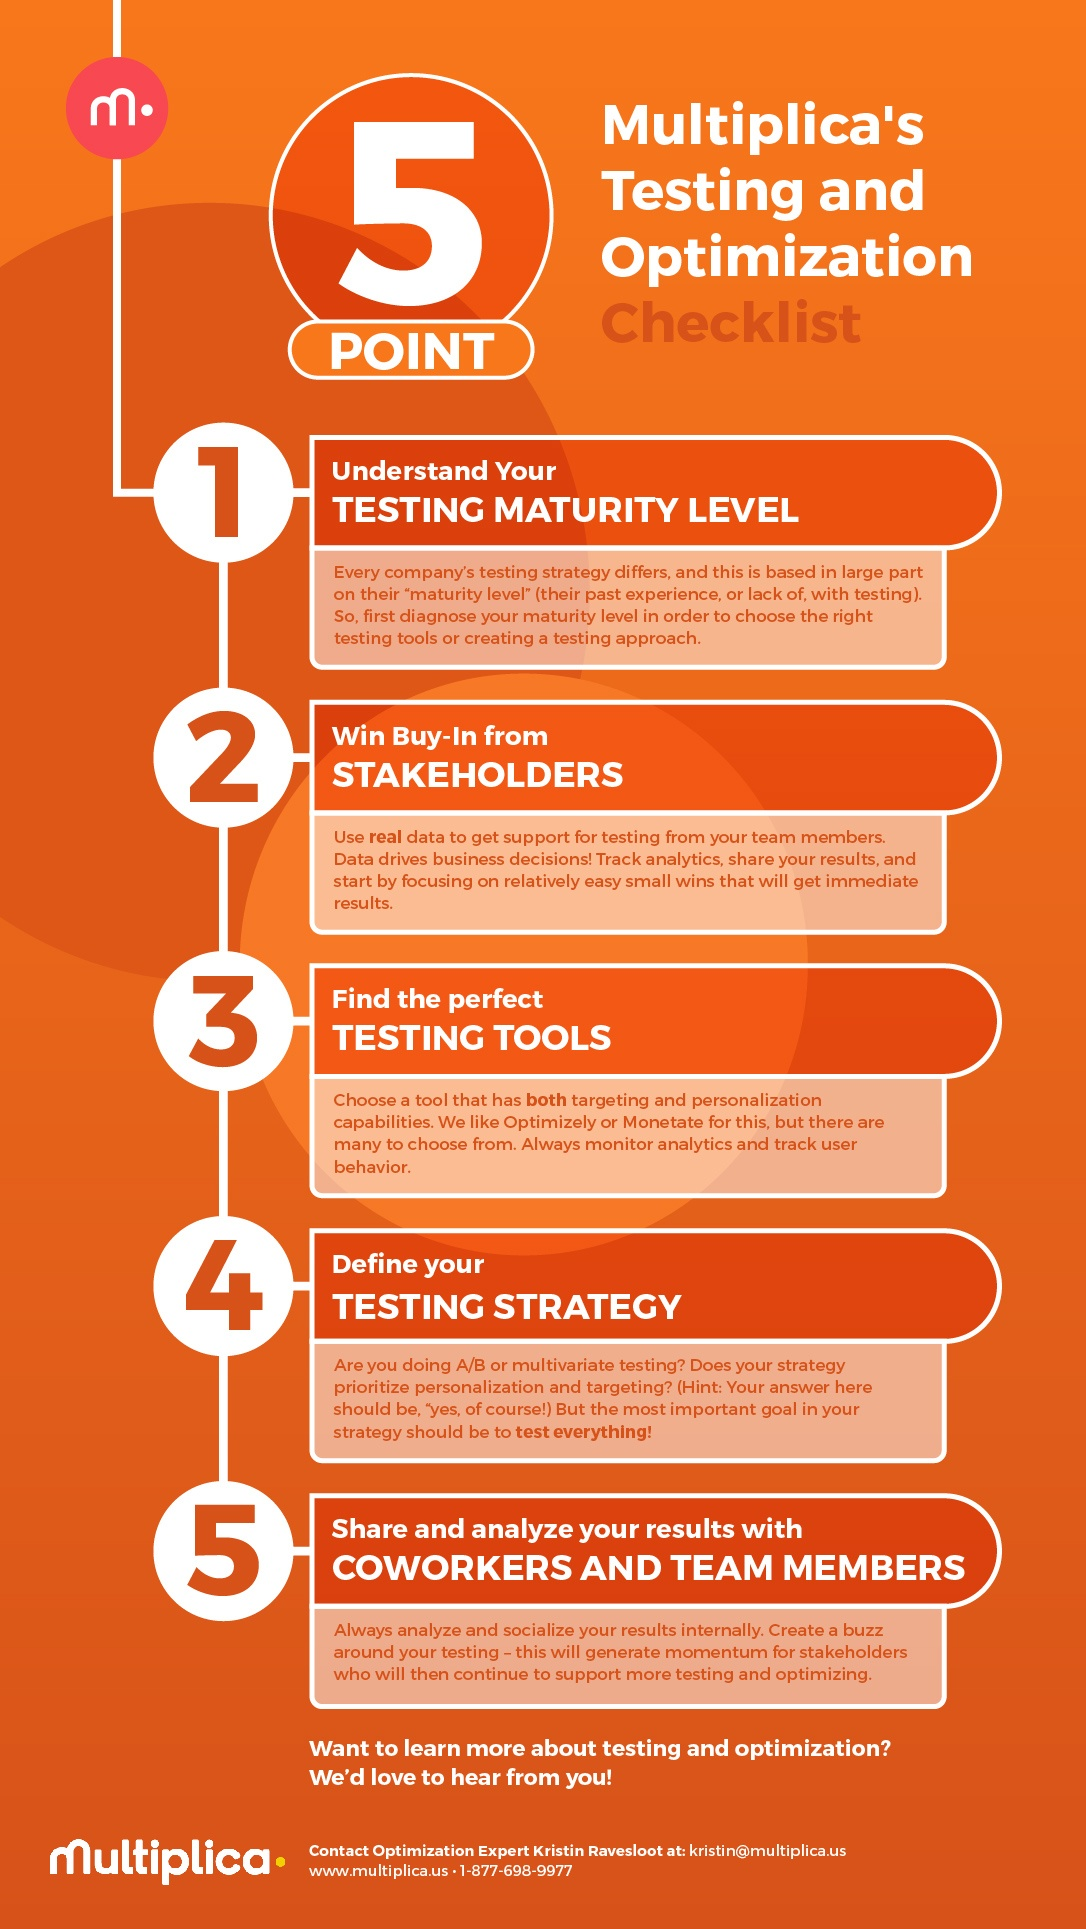 INFOGRAHPIC_5 Point Testing and Optimization Checklist.jpg